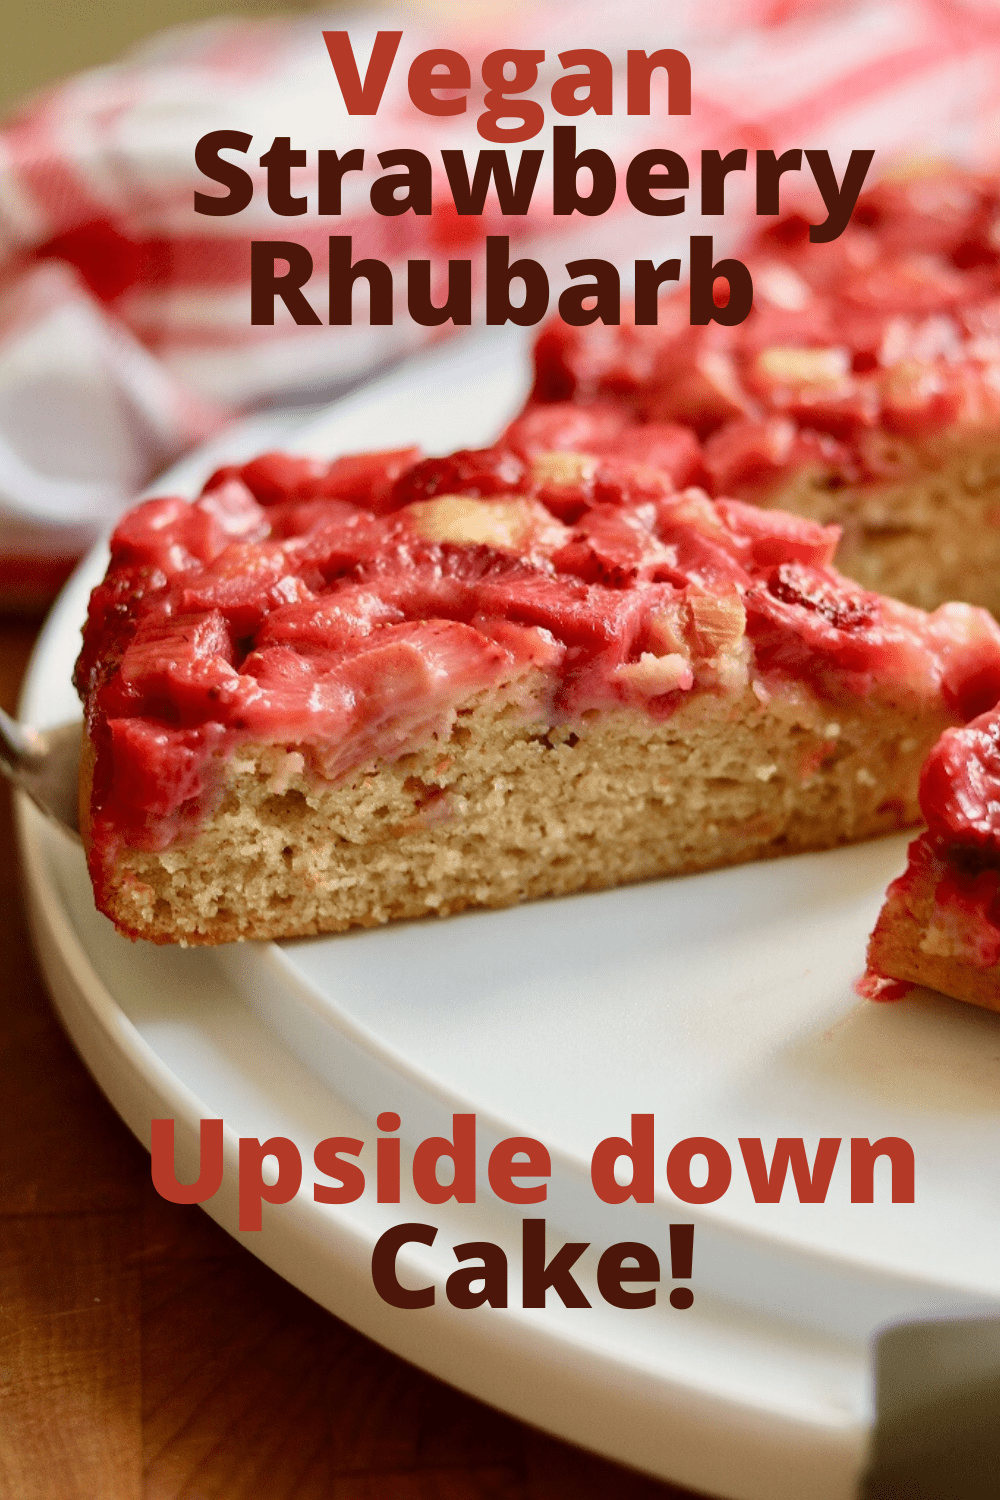 This Strawberry Rhubarb Upside Down Cake Is Amazing And Vegan With Sweet Fresh Strawberries T In 2020 Rhubarb Upside Down Cake Upside Down Cake Vegan Dessert Recipes